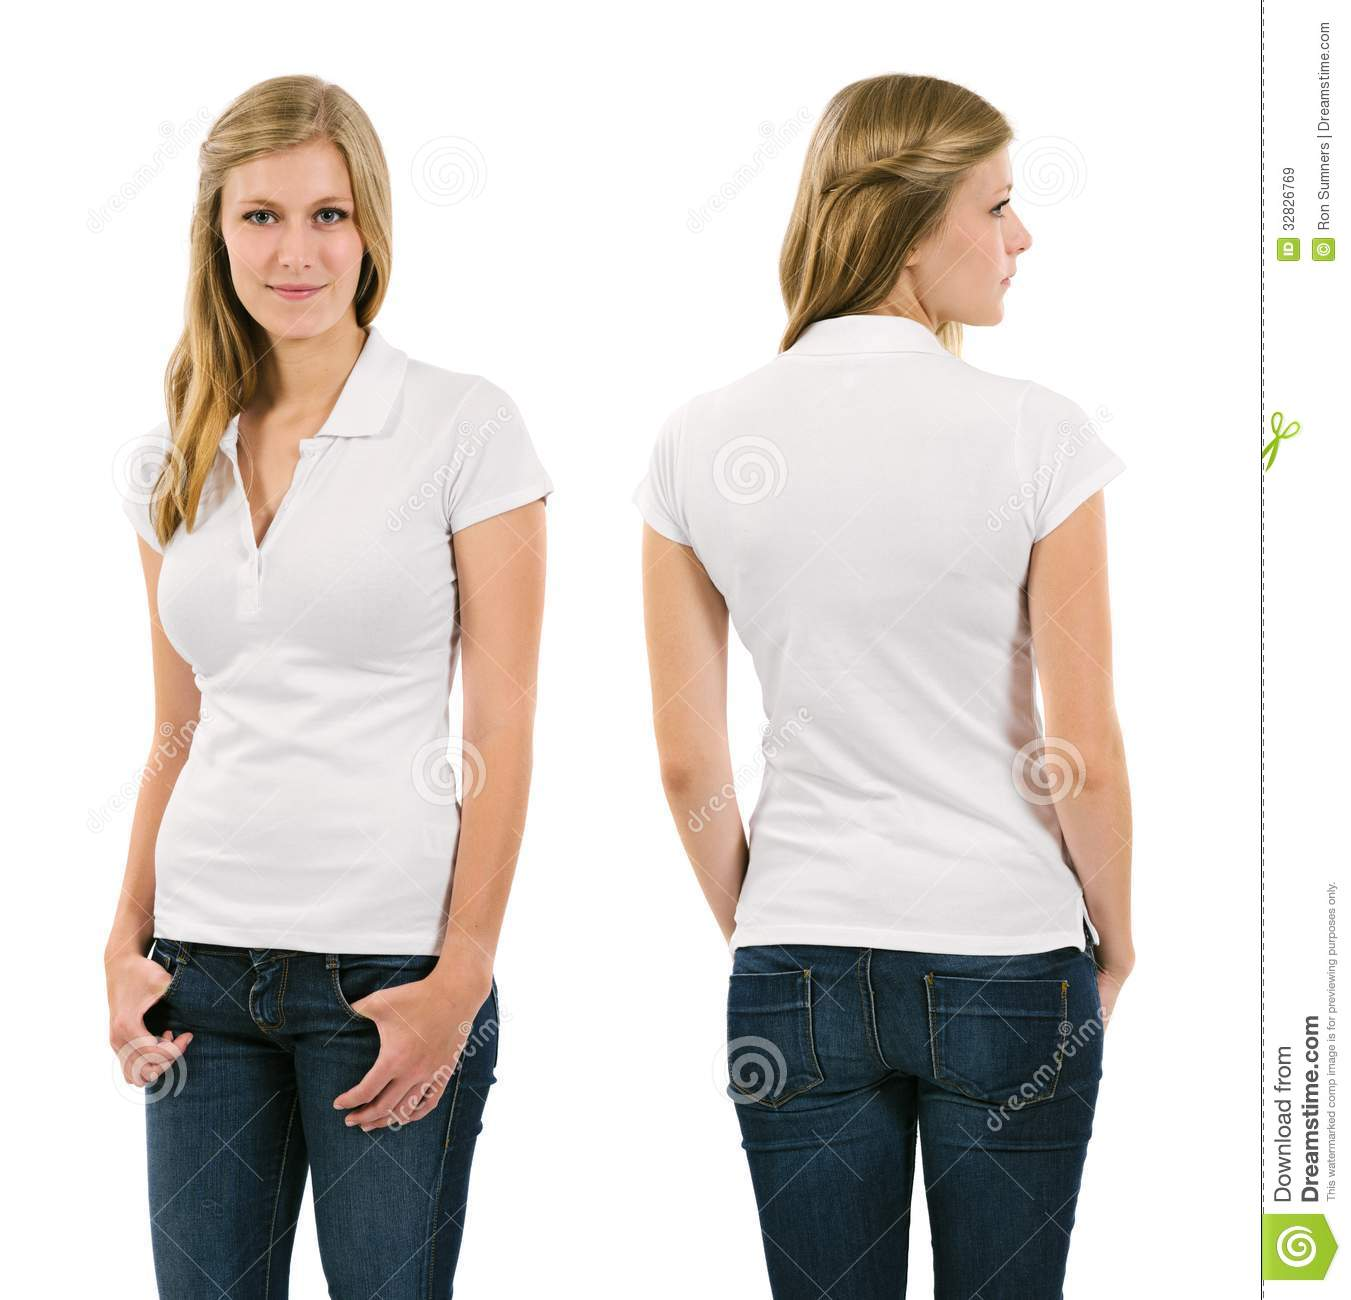 Young Blond Woman With Blank White Polo Shirt Stock Image